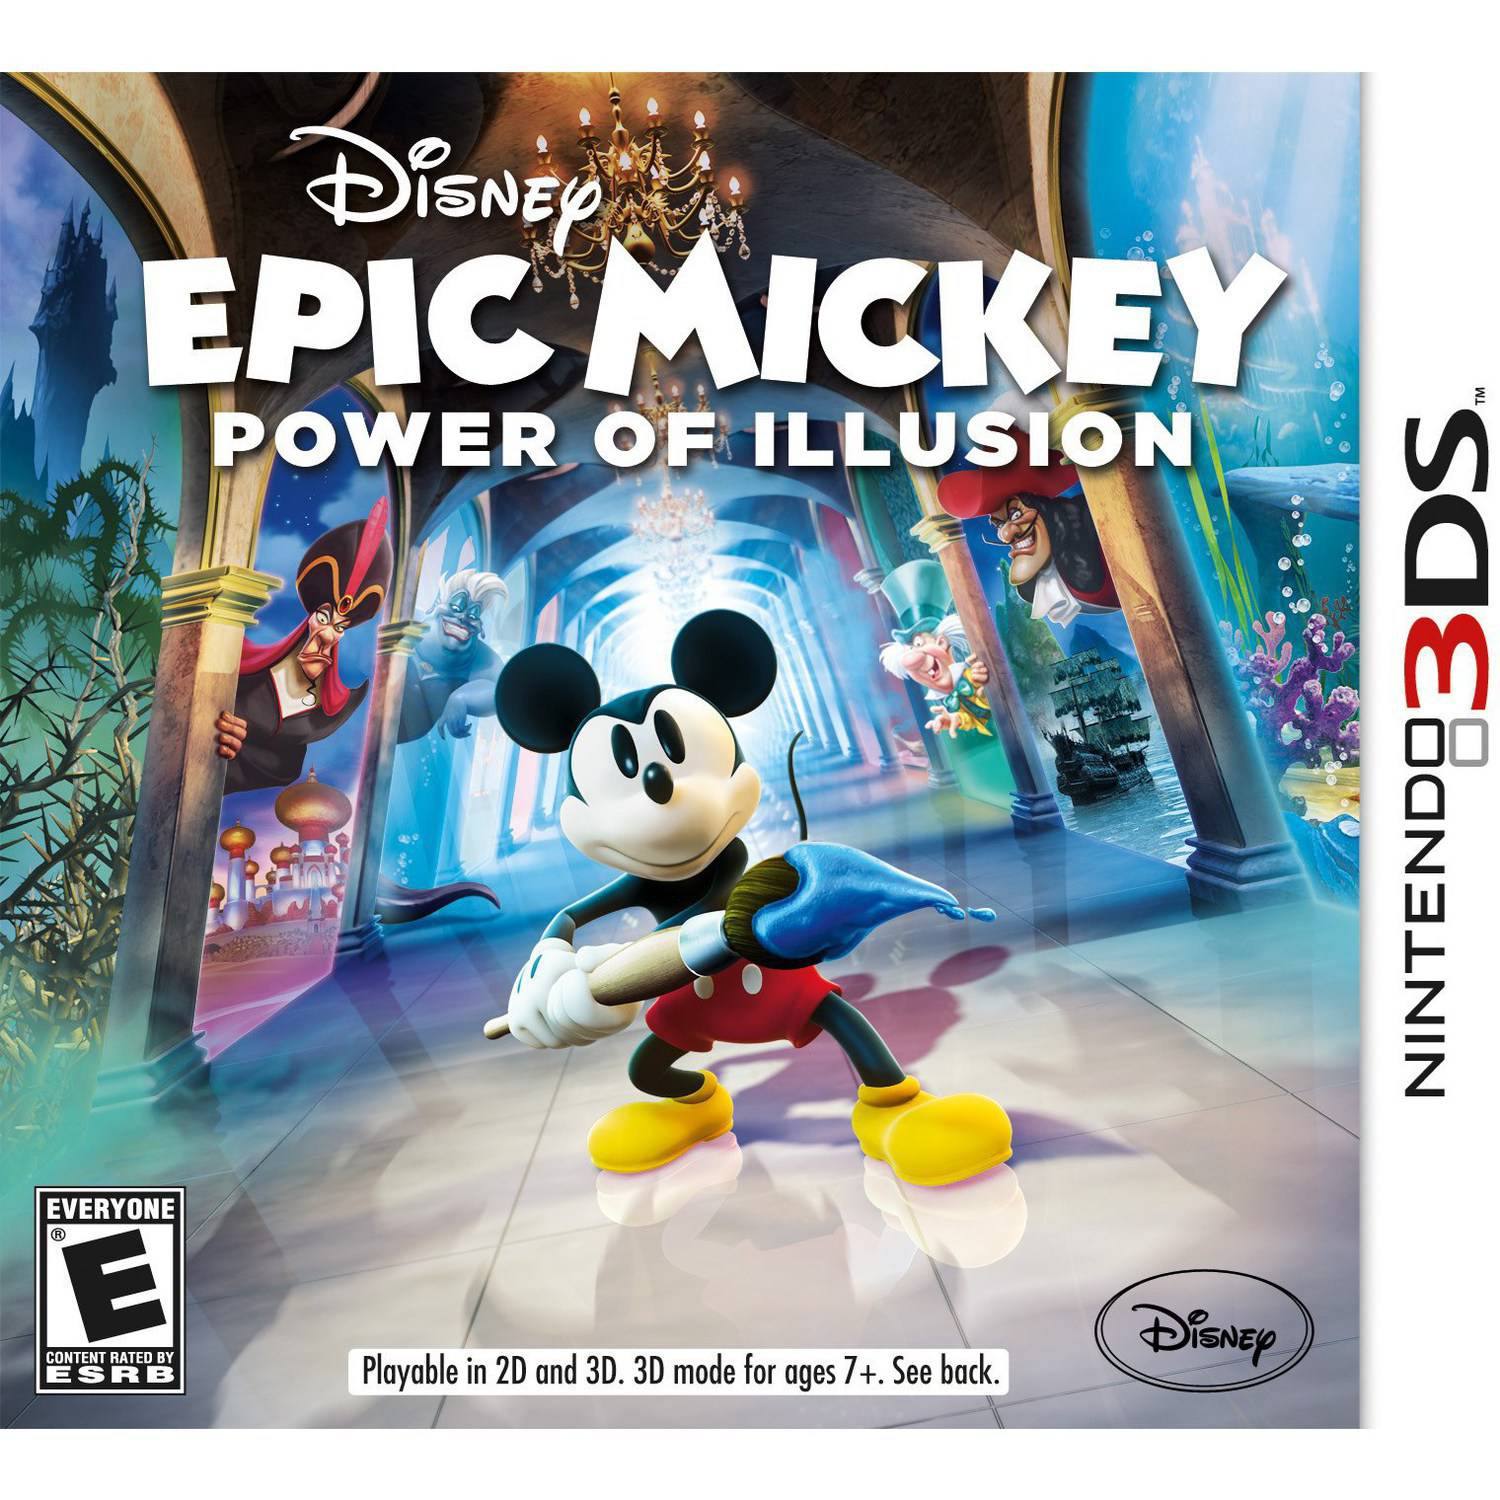 Disney Epic Mickey: Power of Illusion (Nintendo 3DS) - Pre-Owned